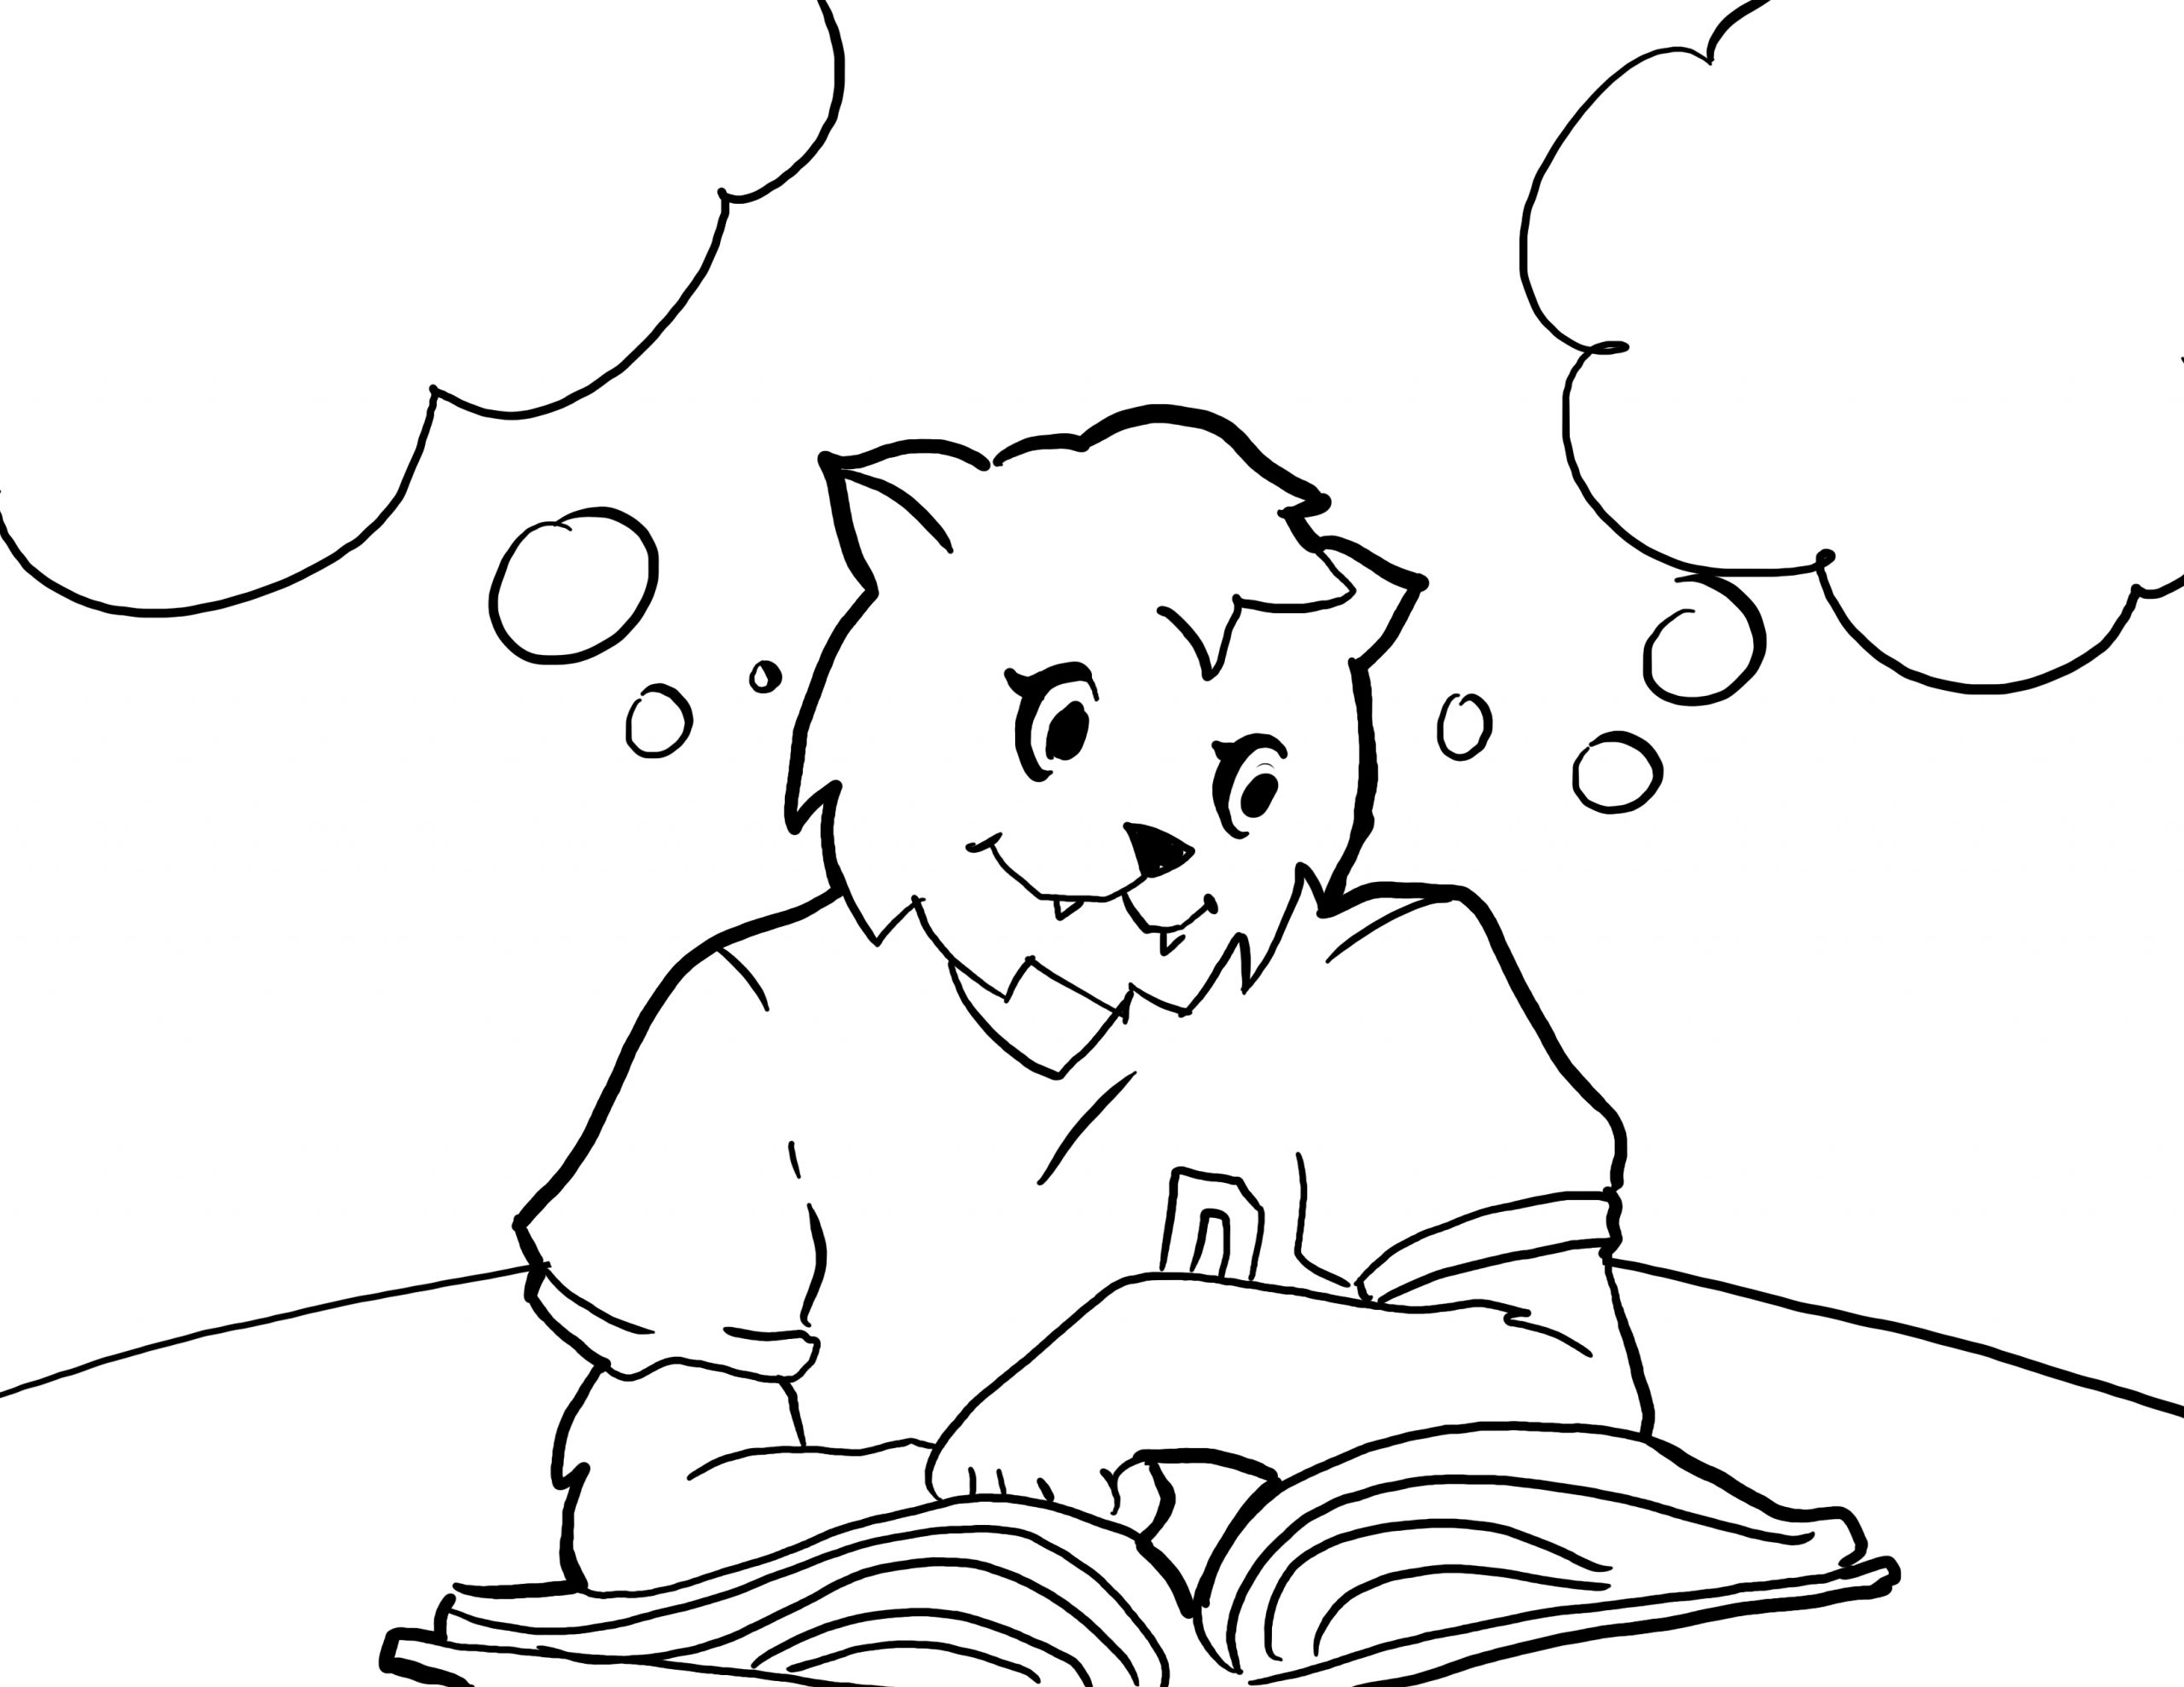 Lux Reading a Book Coloring Page